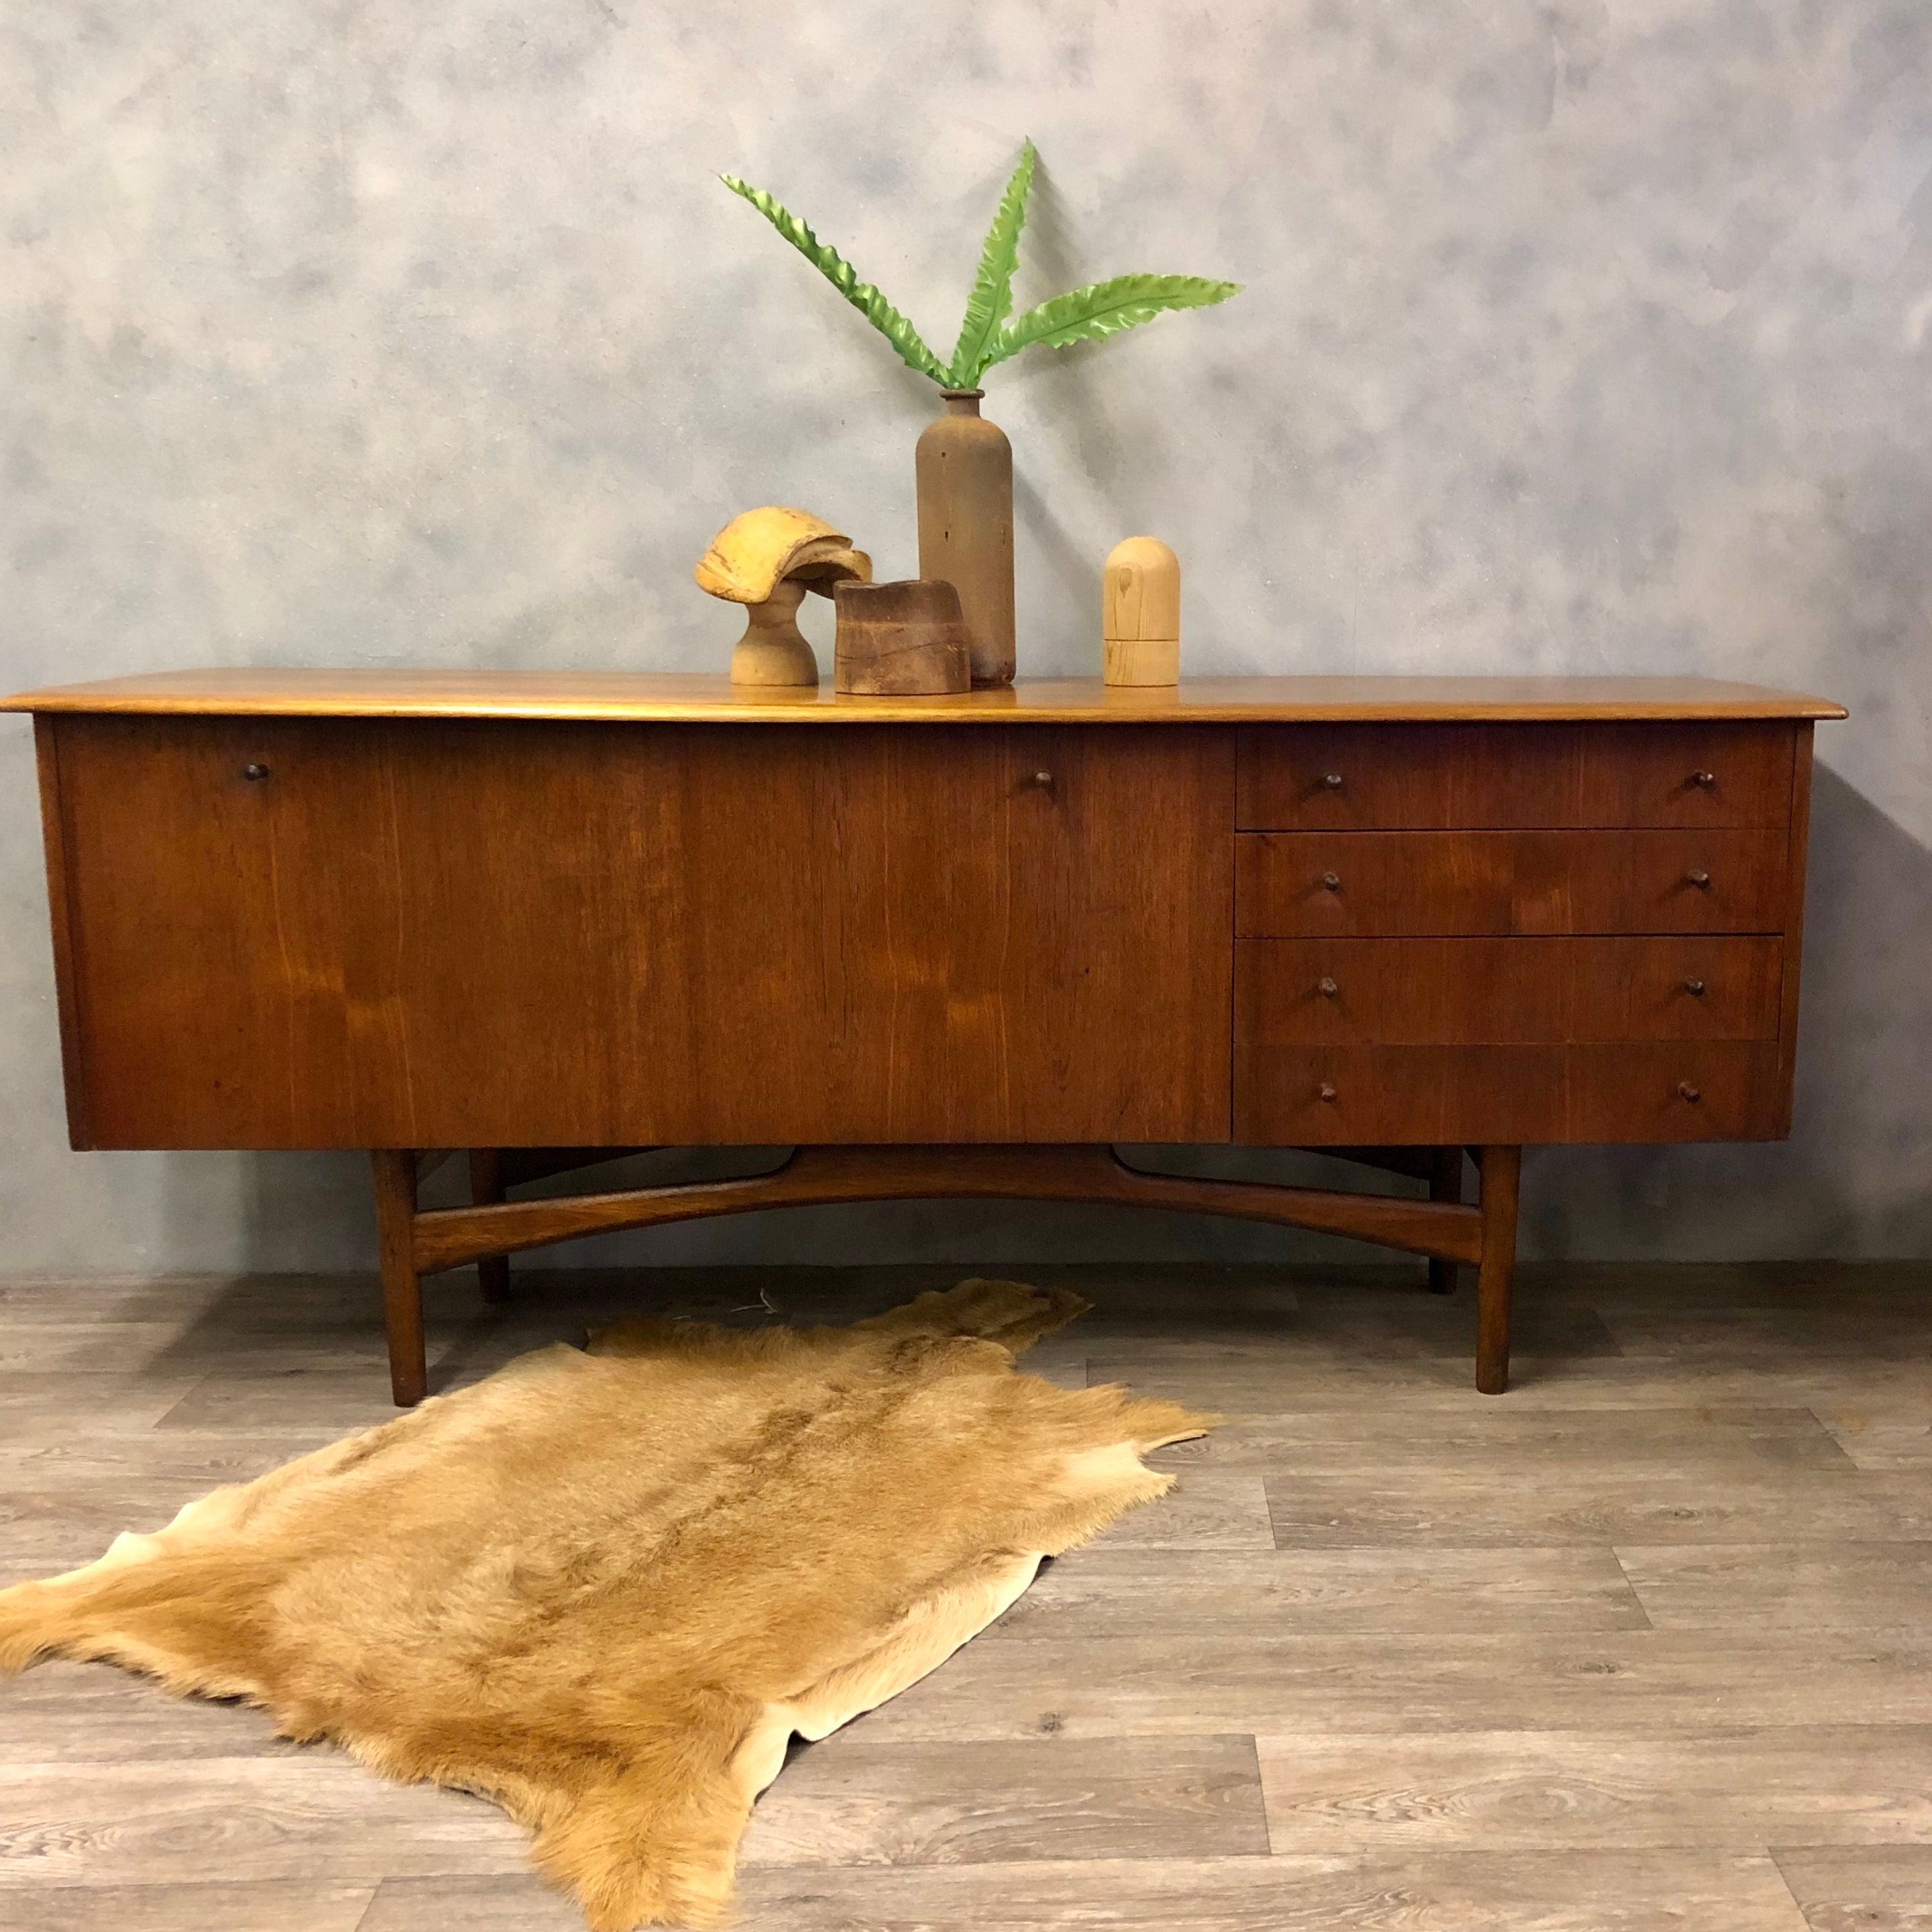 Midcentury Teak and Afromosia sideboard by Dalescraft